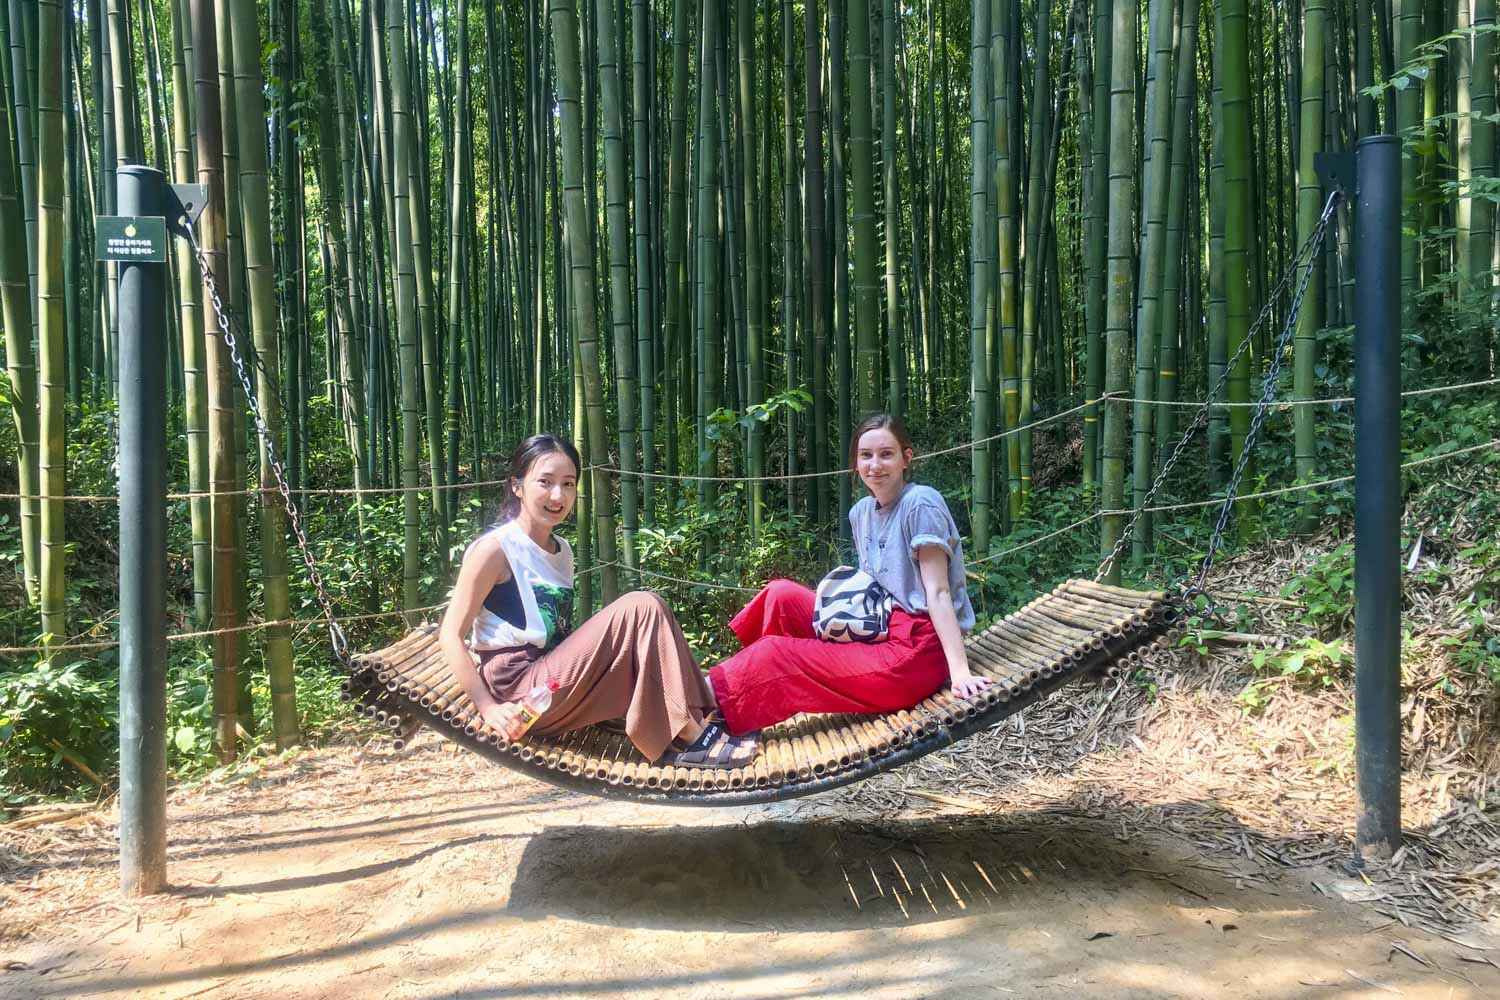 Olivia Grotenhuis (right) relaxes with Yoo Hyang, a graduate student at Chonnam University School of Medicine and her language partner.